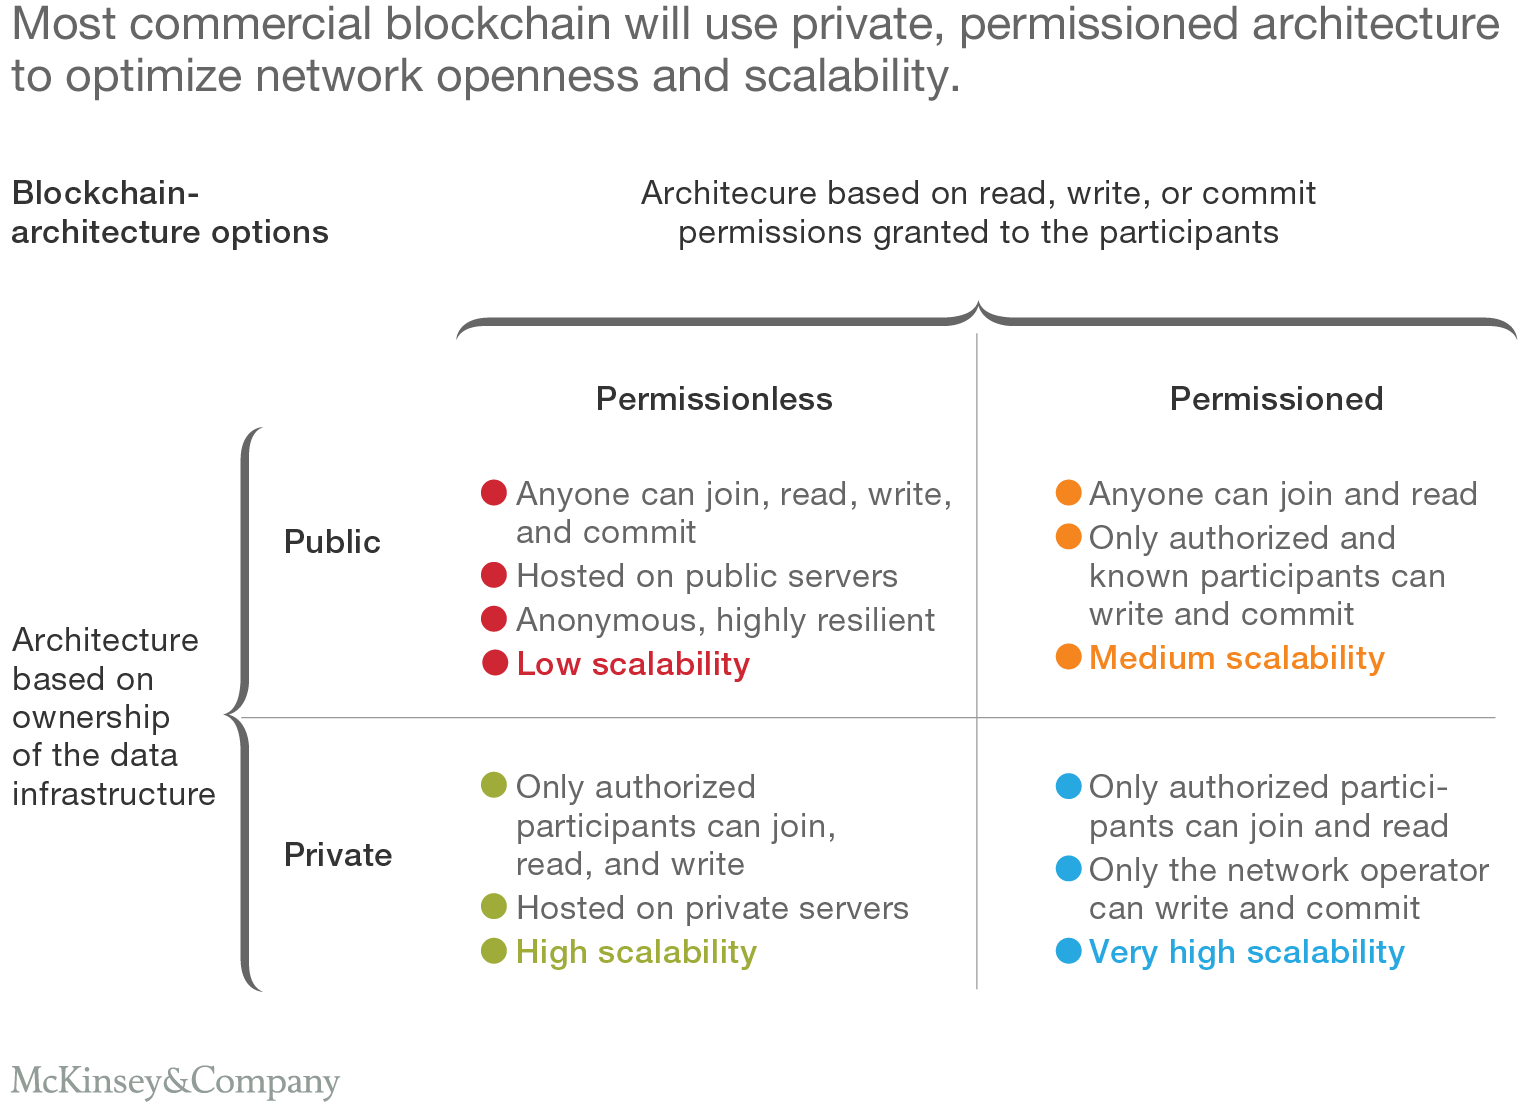 Most commercial blockchain will use private, permissioned architecture to optimize network openness and scalability.